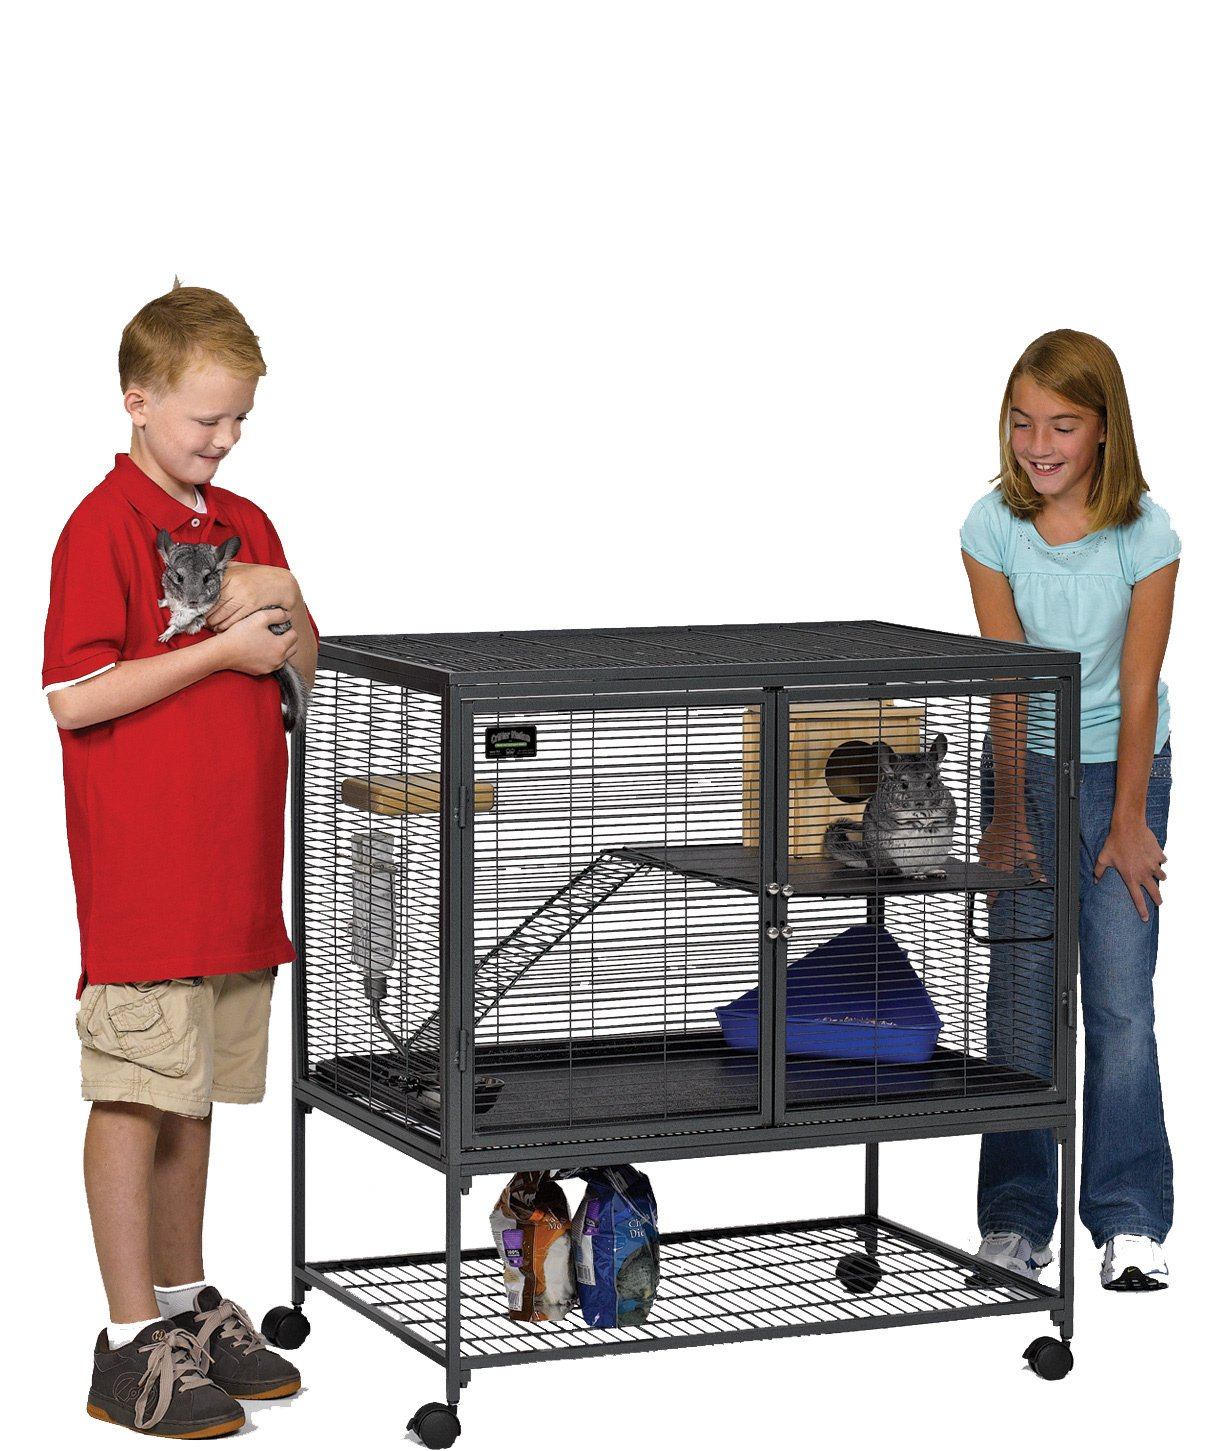 MidWest Deluxe Critter Nation Single Unit Small Animal Cage (Model 161) Includes 1 Leak-Proof Pans, 1 Shelf, 1 Ramps w/ Ramp Cover & 4 locking Wheel Casters, Measures 36''L x 25''W x 38.5''H Inches, Ideal for Dagus, Rats, Ferrets, Sugar Gliders by MidWest Homes for Pets